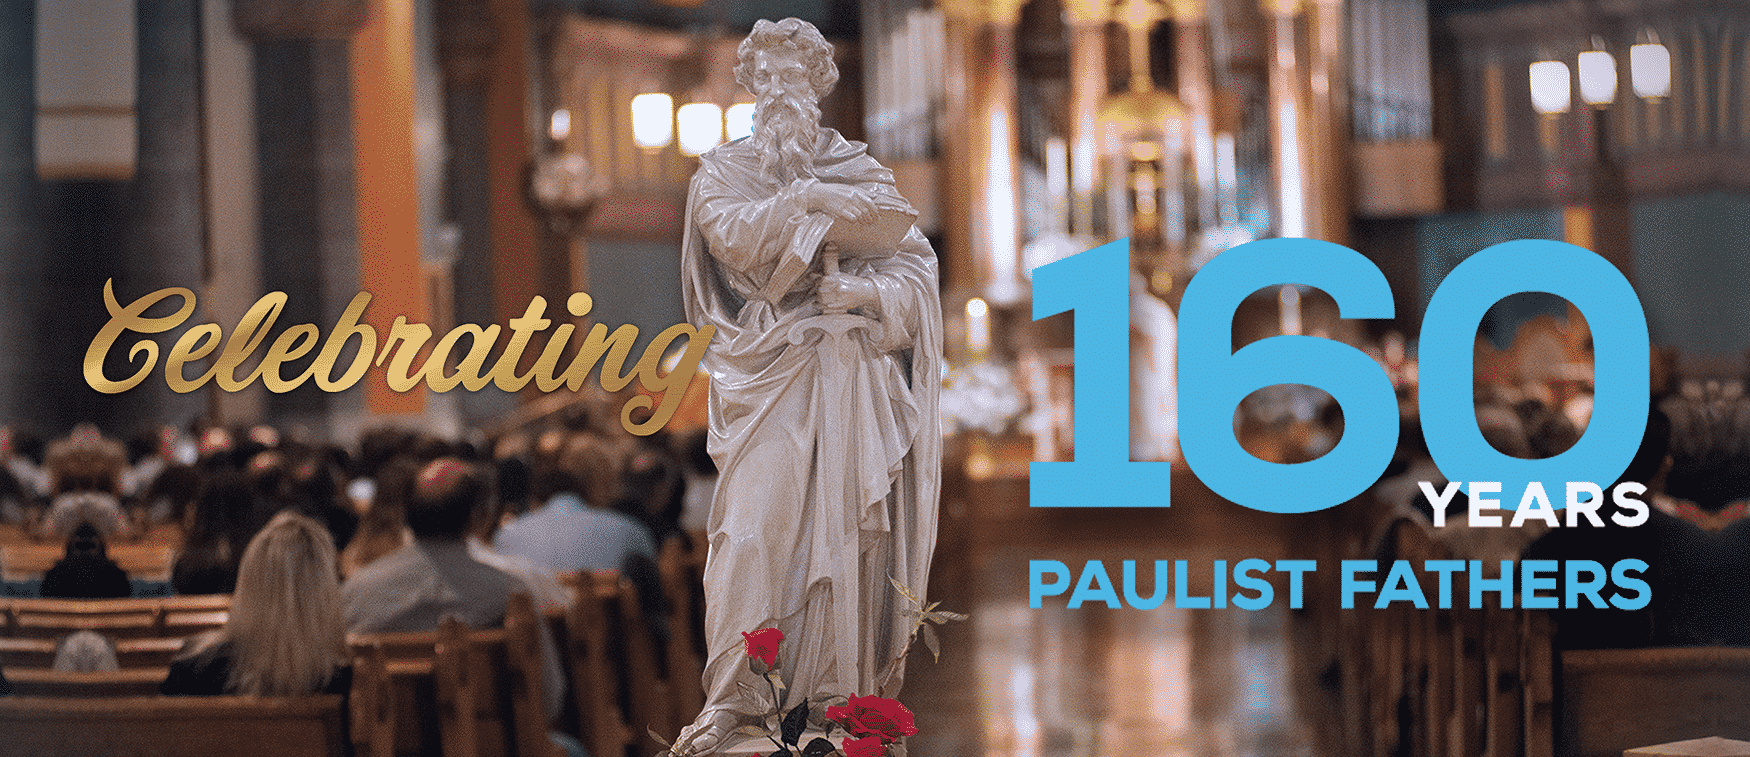 160th-anniversary-st-paul-statue-at-st-pauls-nyc